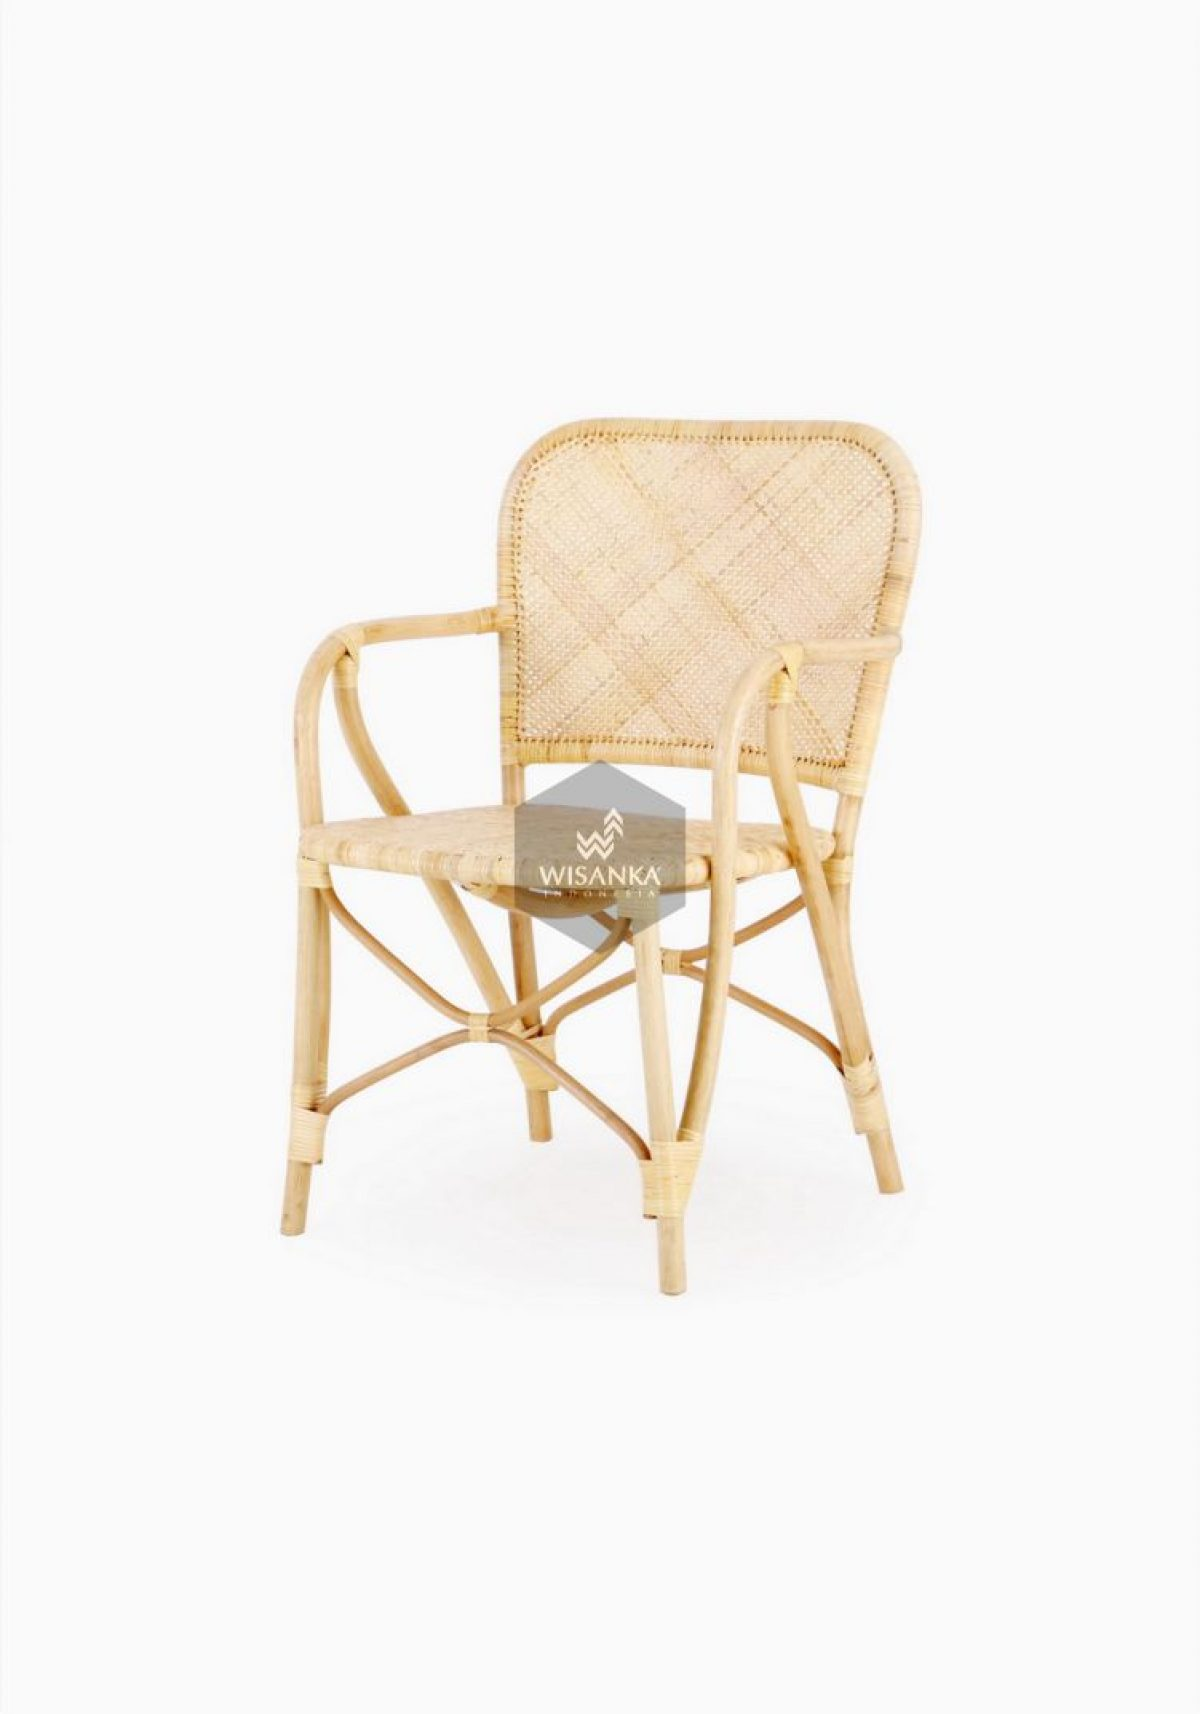 Vivi Cane Dining Chair Natural Rattan Furniture Wholesale Supplier Rattan Kids Furniture